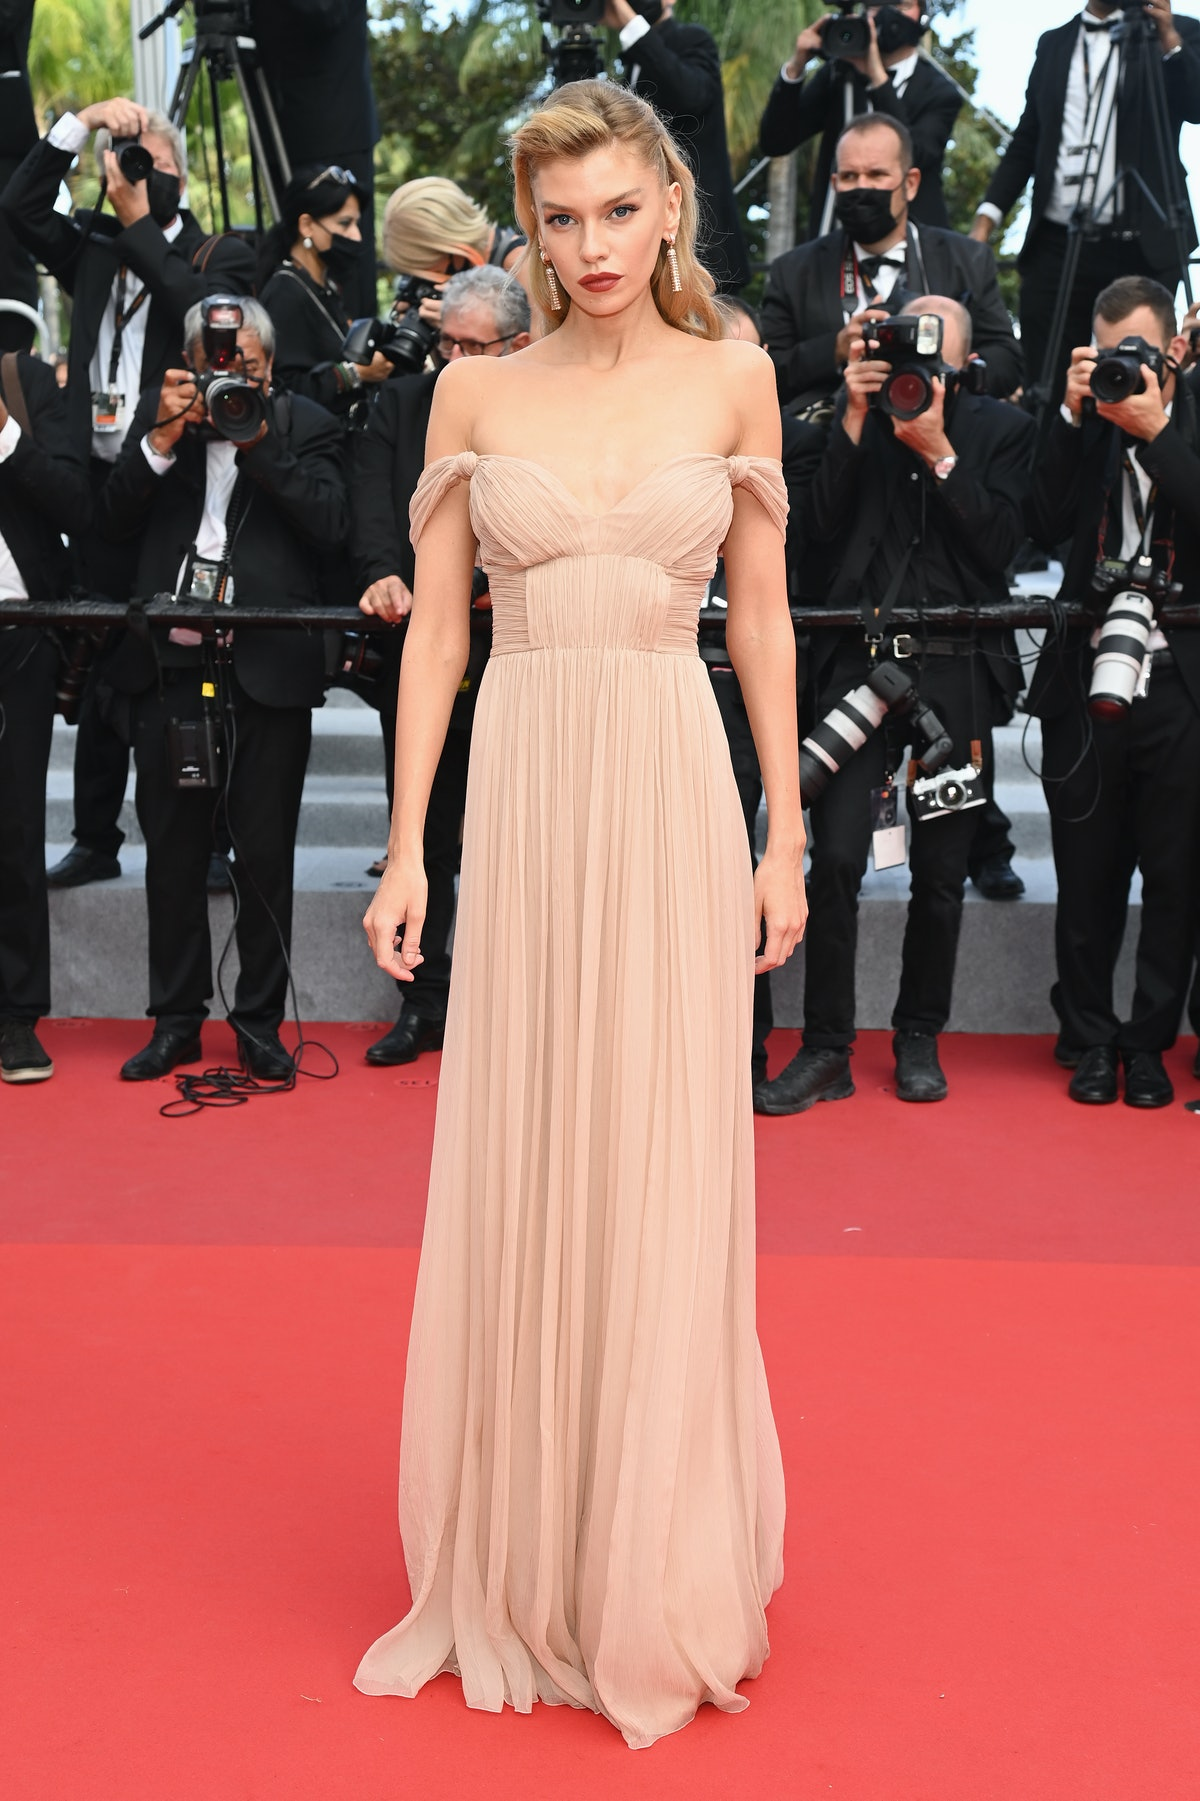 """CANNES, FRANCE - JULY 15: Stella Maxwell attends the """"France"""" screening during the 74th annual Cannes Film Festival on July 15, 2021 in Cannes, France. (Photo by Pascal Le Segretain/Getty Images)"""